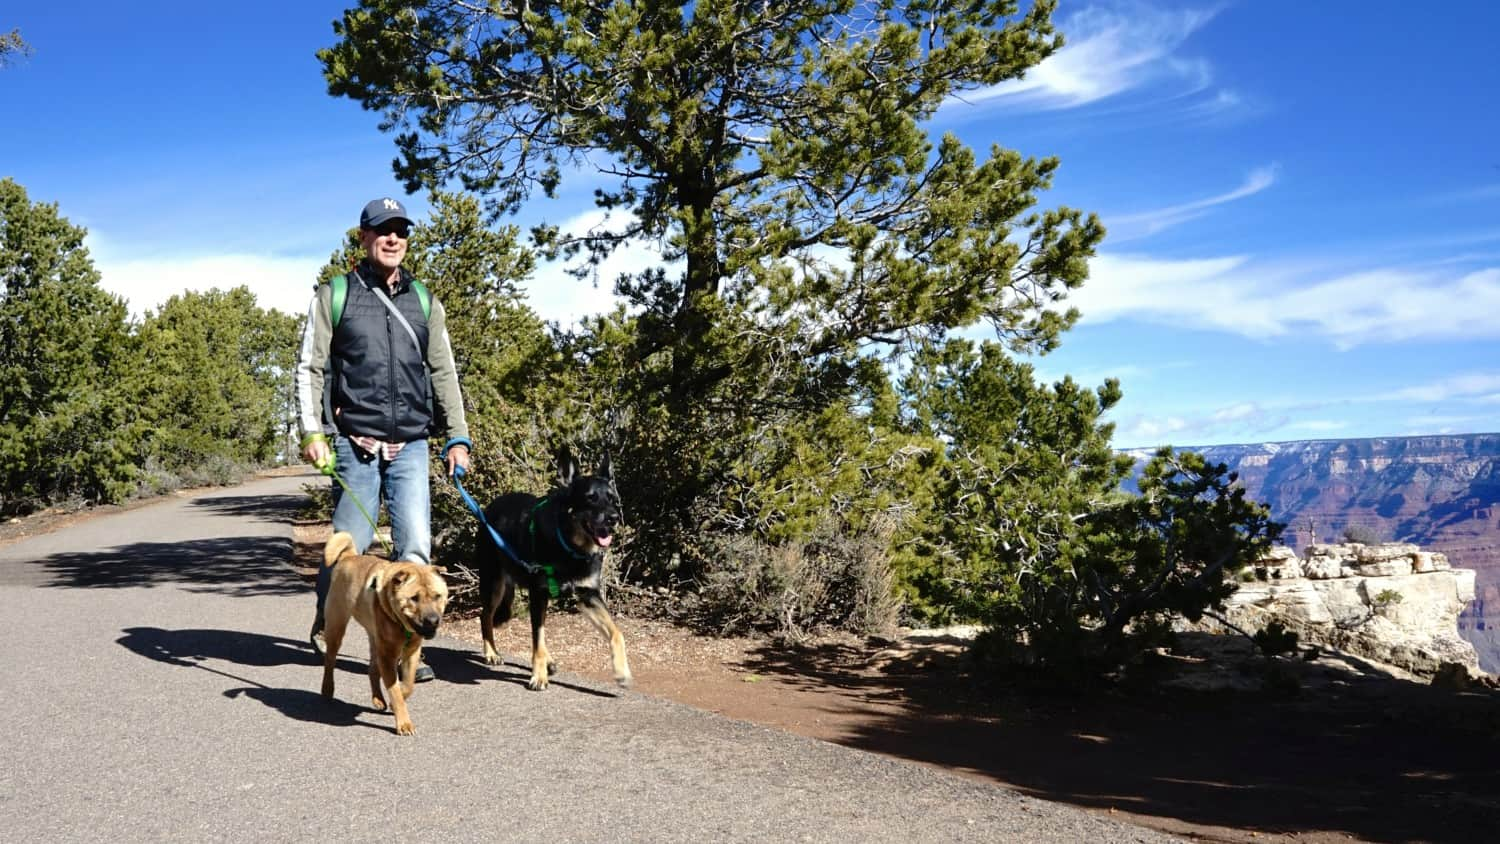 Man walking a German Shepherd Dog and Shar-pei on the pet friendly trail at Grand Canyon National Park, Arizona